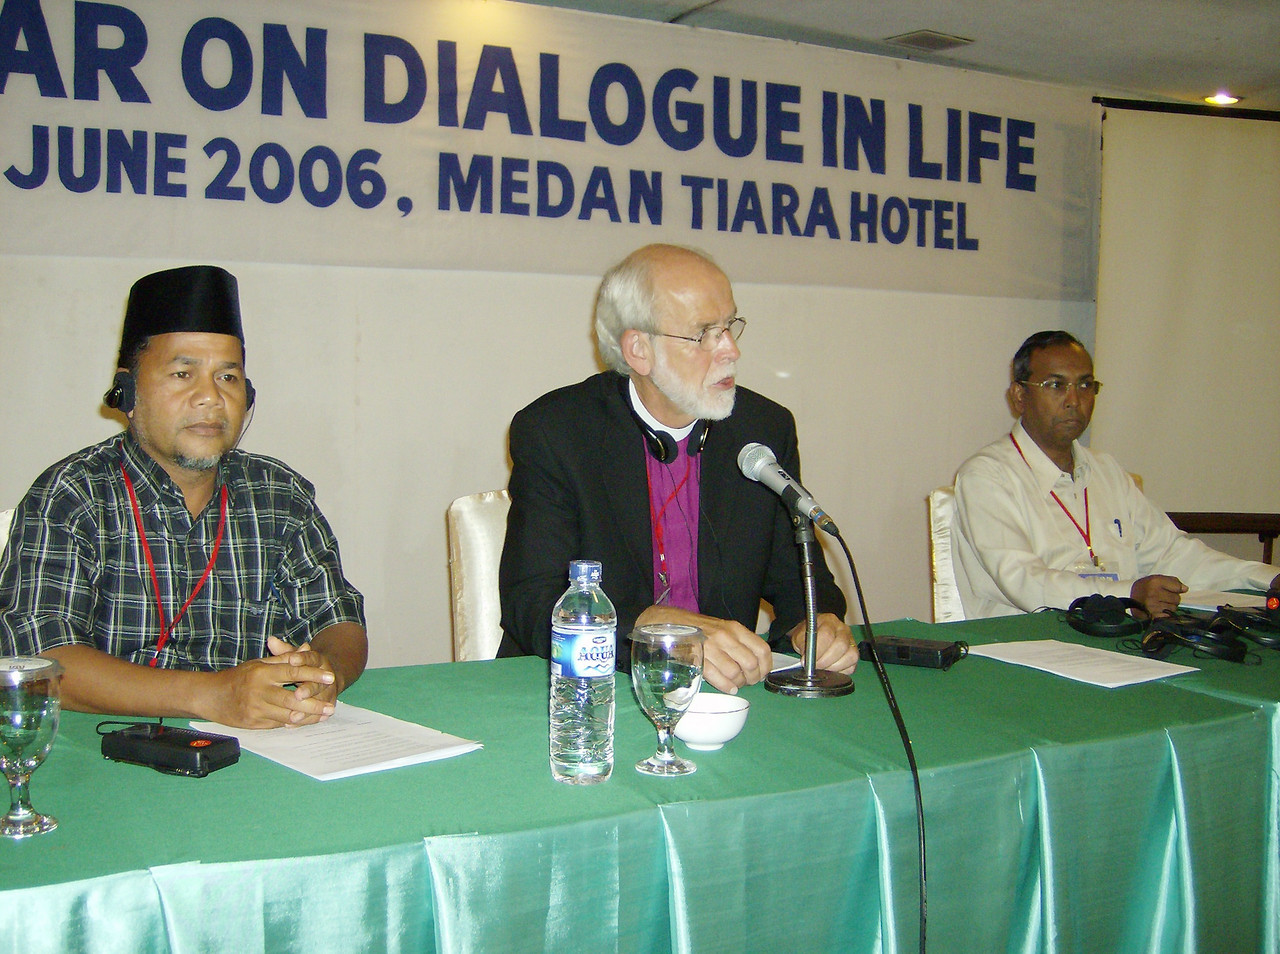 The Rev. Mark S. Hanson, ELCA presiding bishop and LWF president, was  flanked June 30 by Muslim (left) and Christian chairs of the LWF Seminar  on Dialogue in Life, Tiara Hotel, Medan, Indonesia.